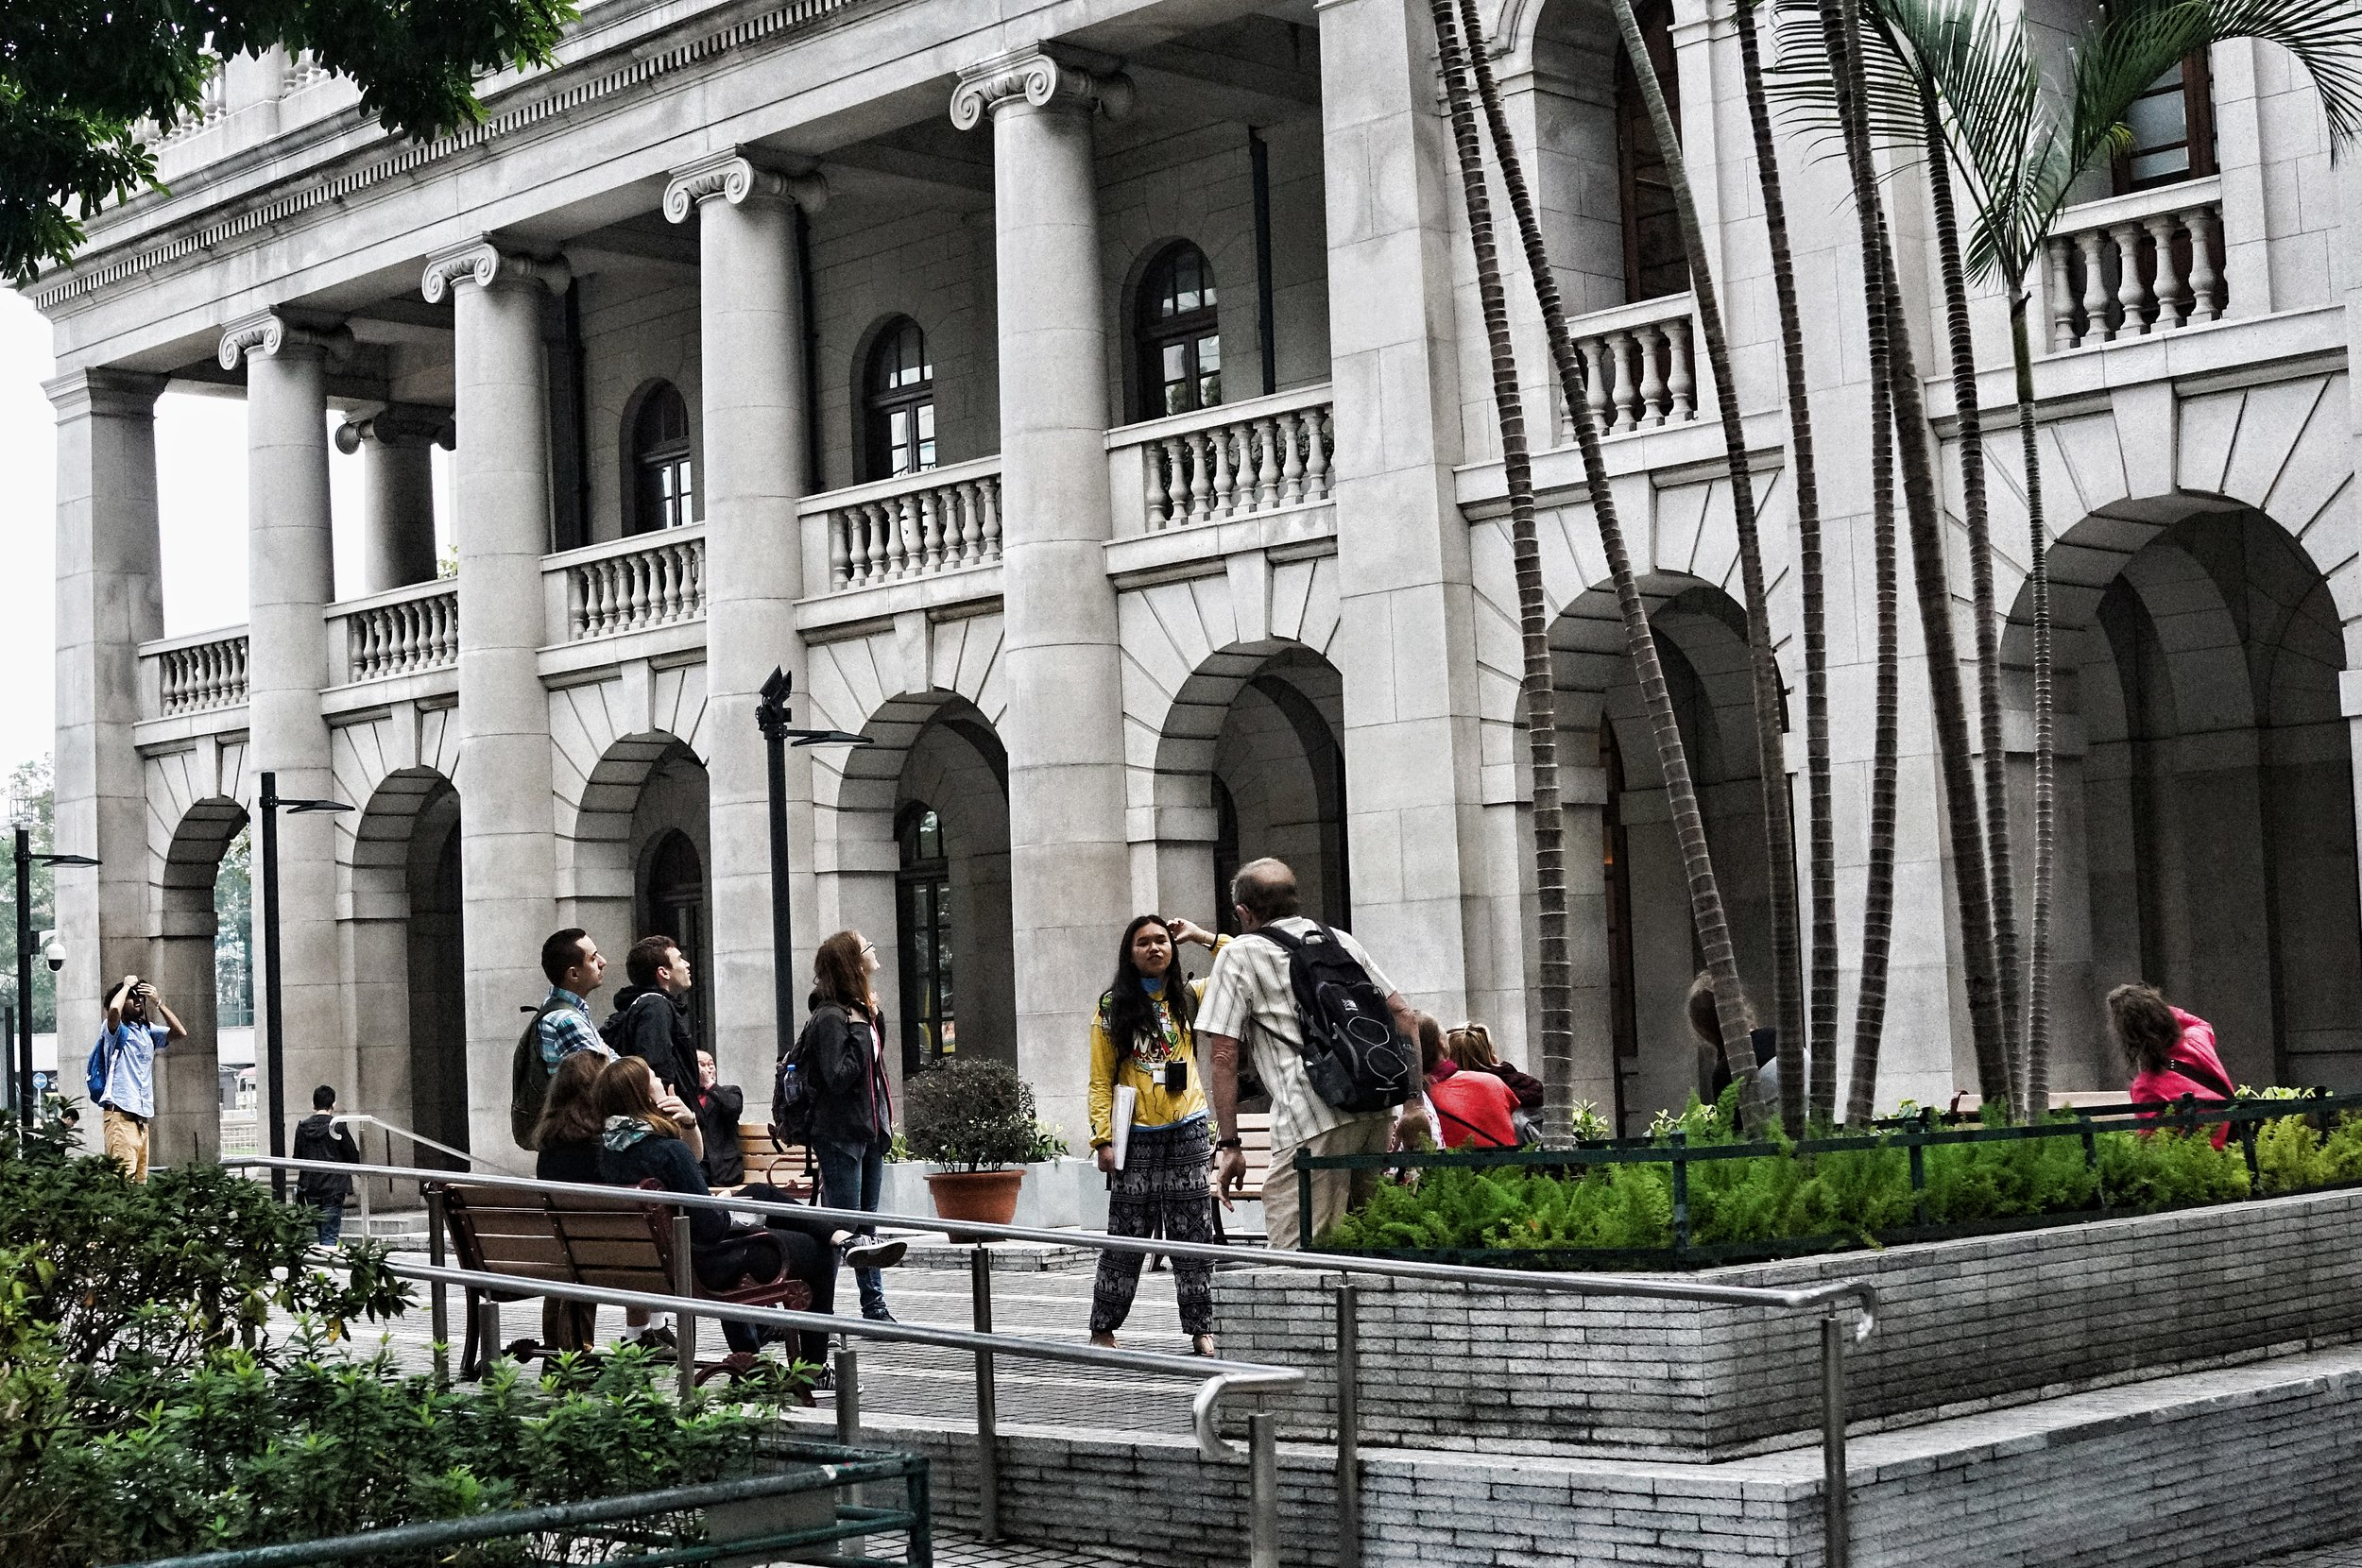 The Free Tour group lurking in Statue Square in Central... my most popular tour is actually 2 people for 8 hours as opposed to 25 people on a 2 1/2 hour free tour... contact me for details on how you can book one of my premium private tours of Hong Kong.